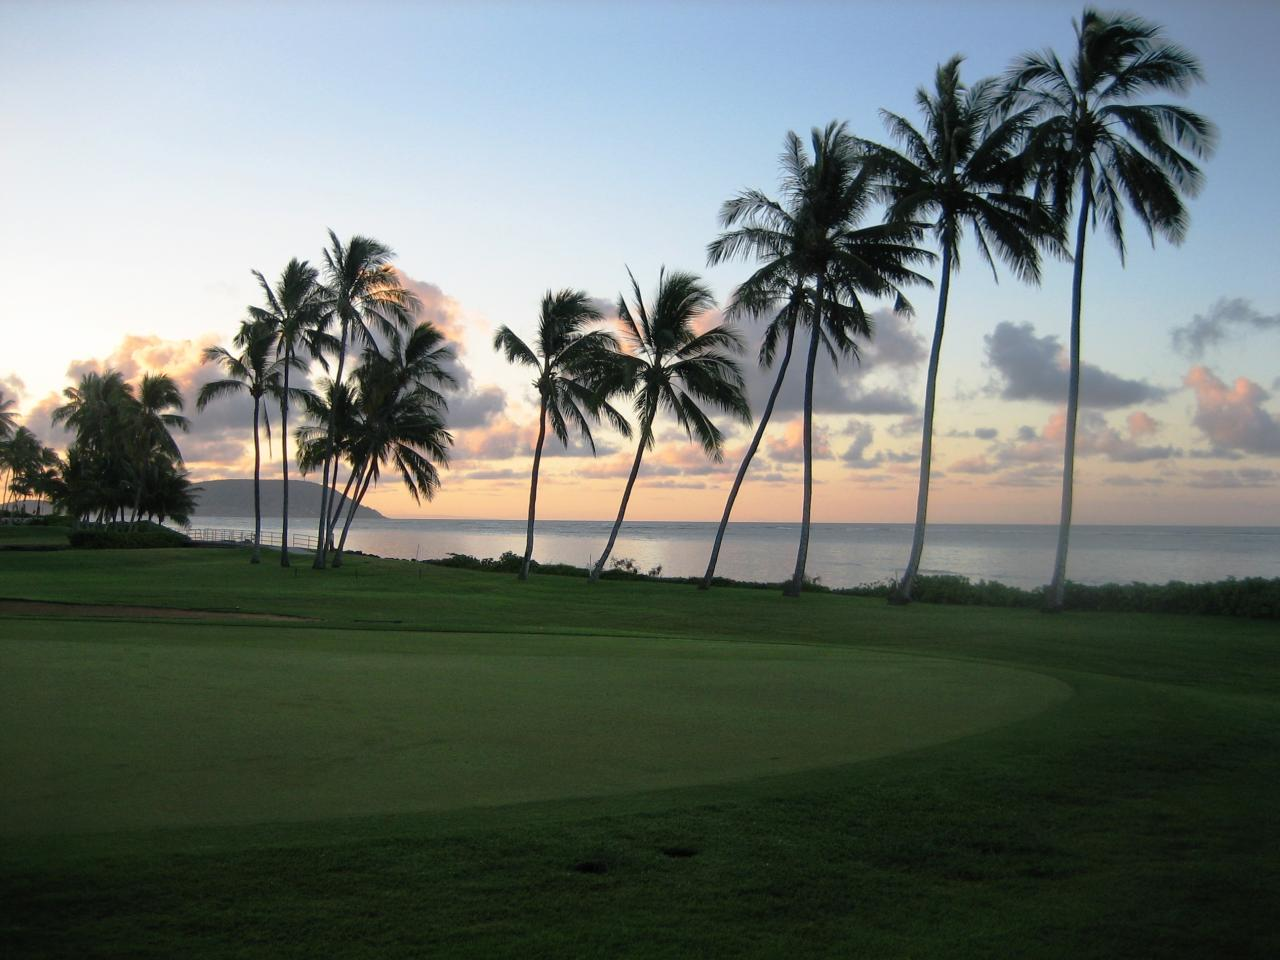 Overview of golf course named Waialae Country Club